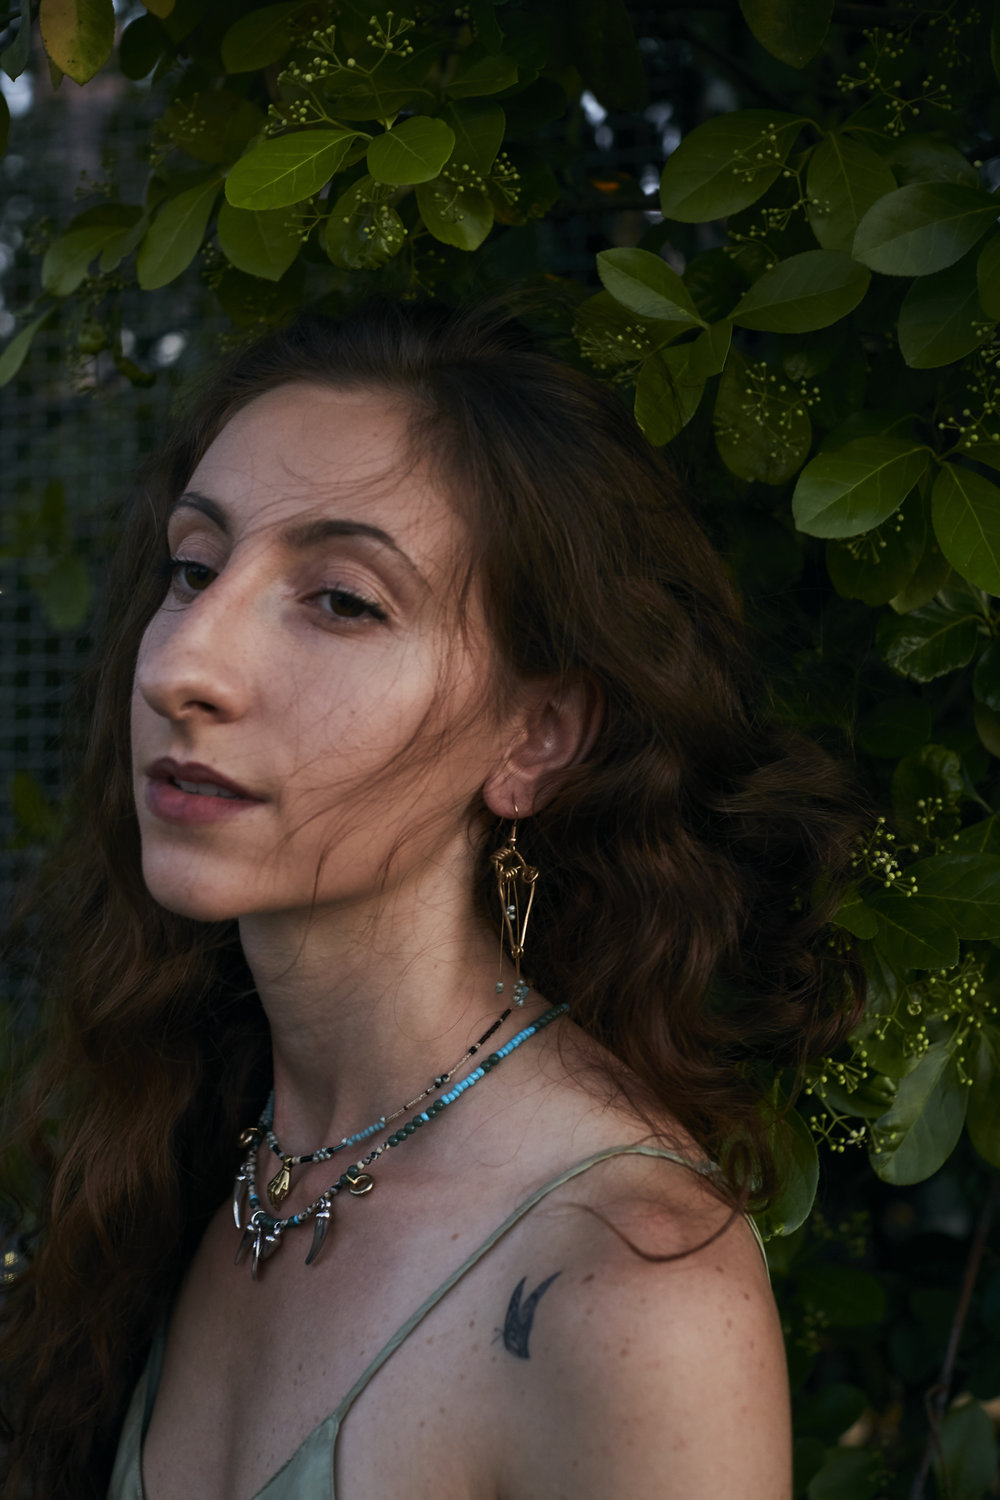 Meet the maker - Hannah Welch shares with us her journey into jewelry making.